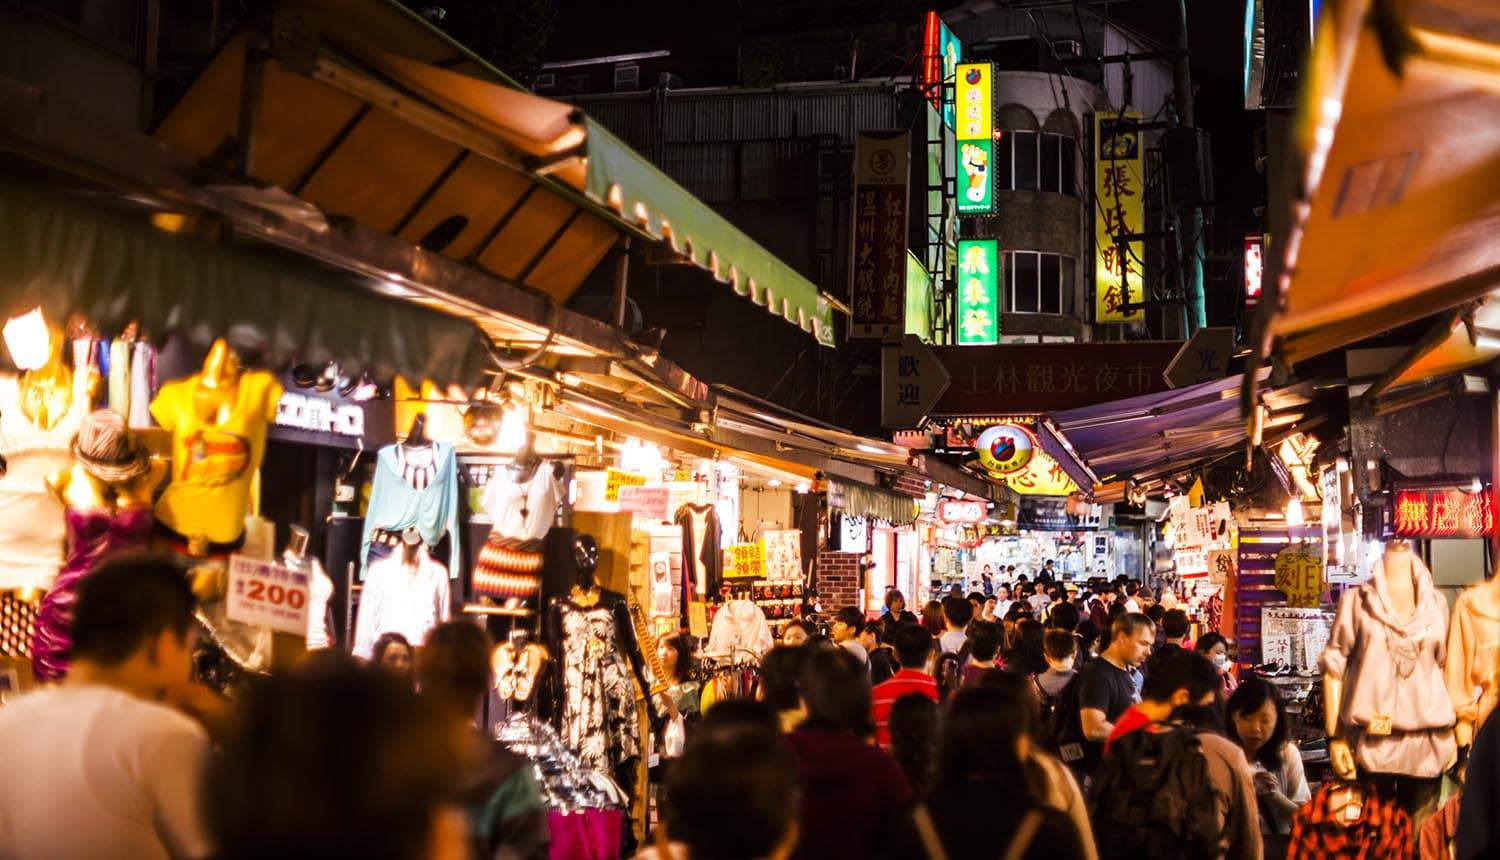 Crowd of people at night market showing the previously exposed credentials being recirculated in underground communities